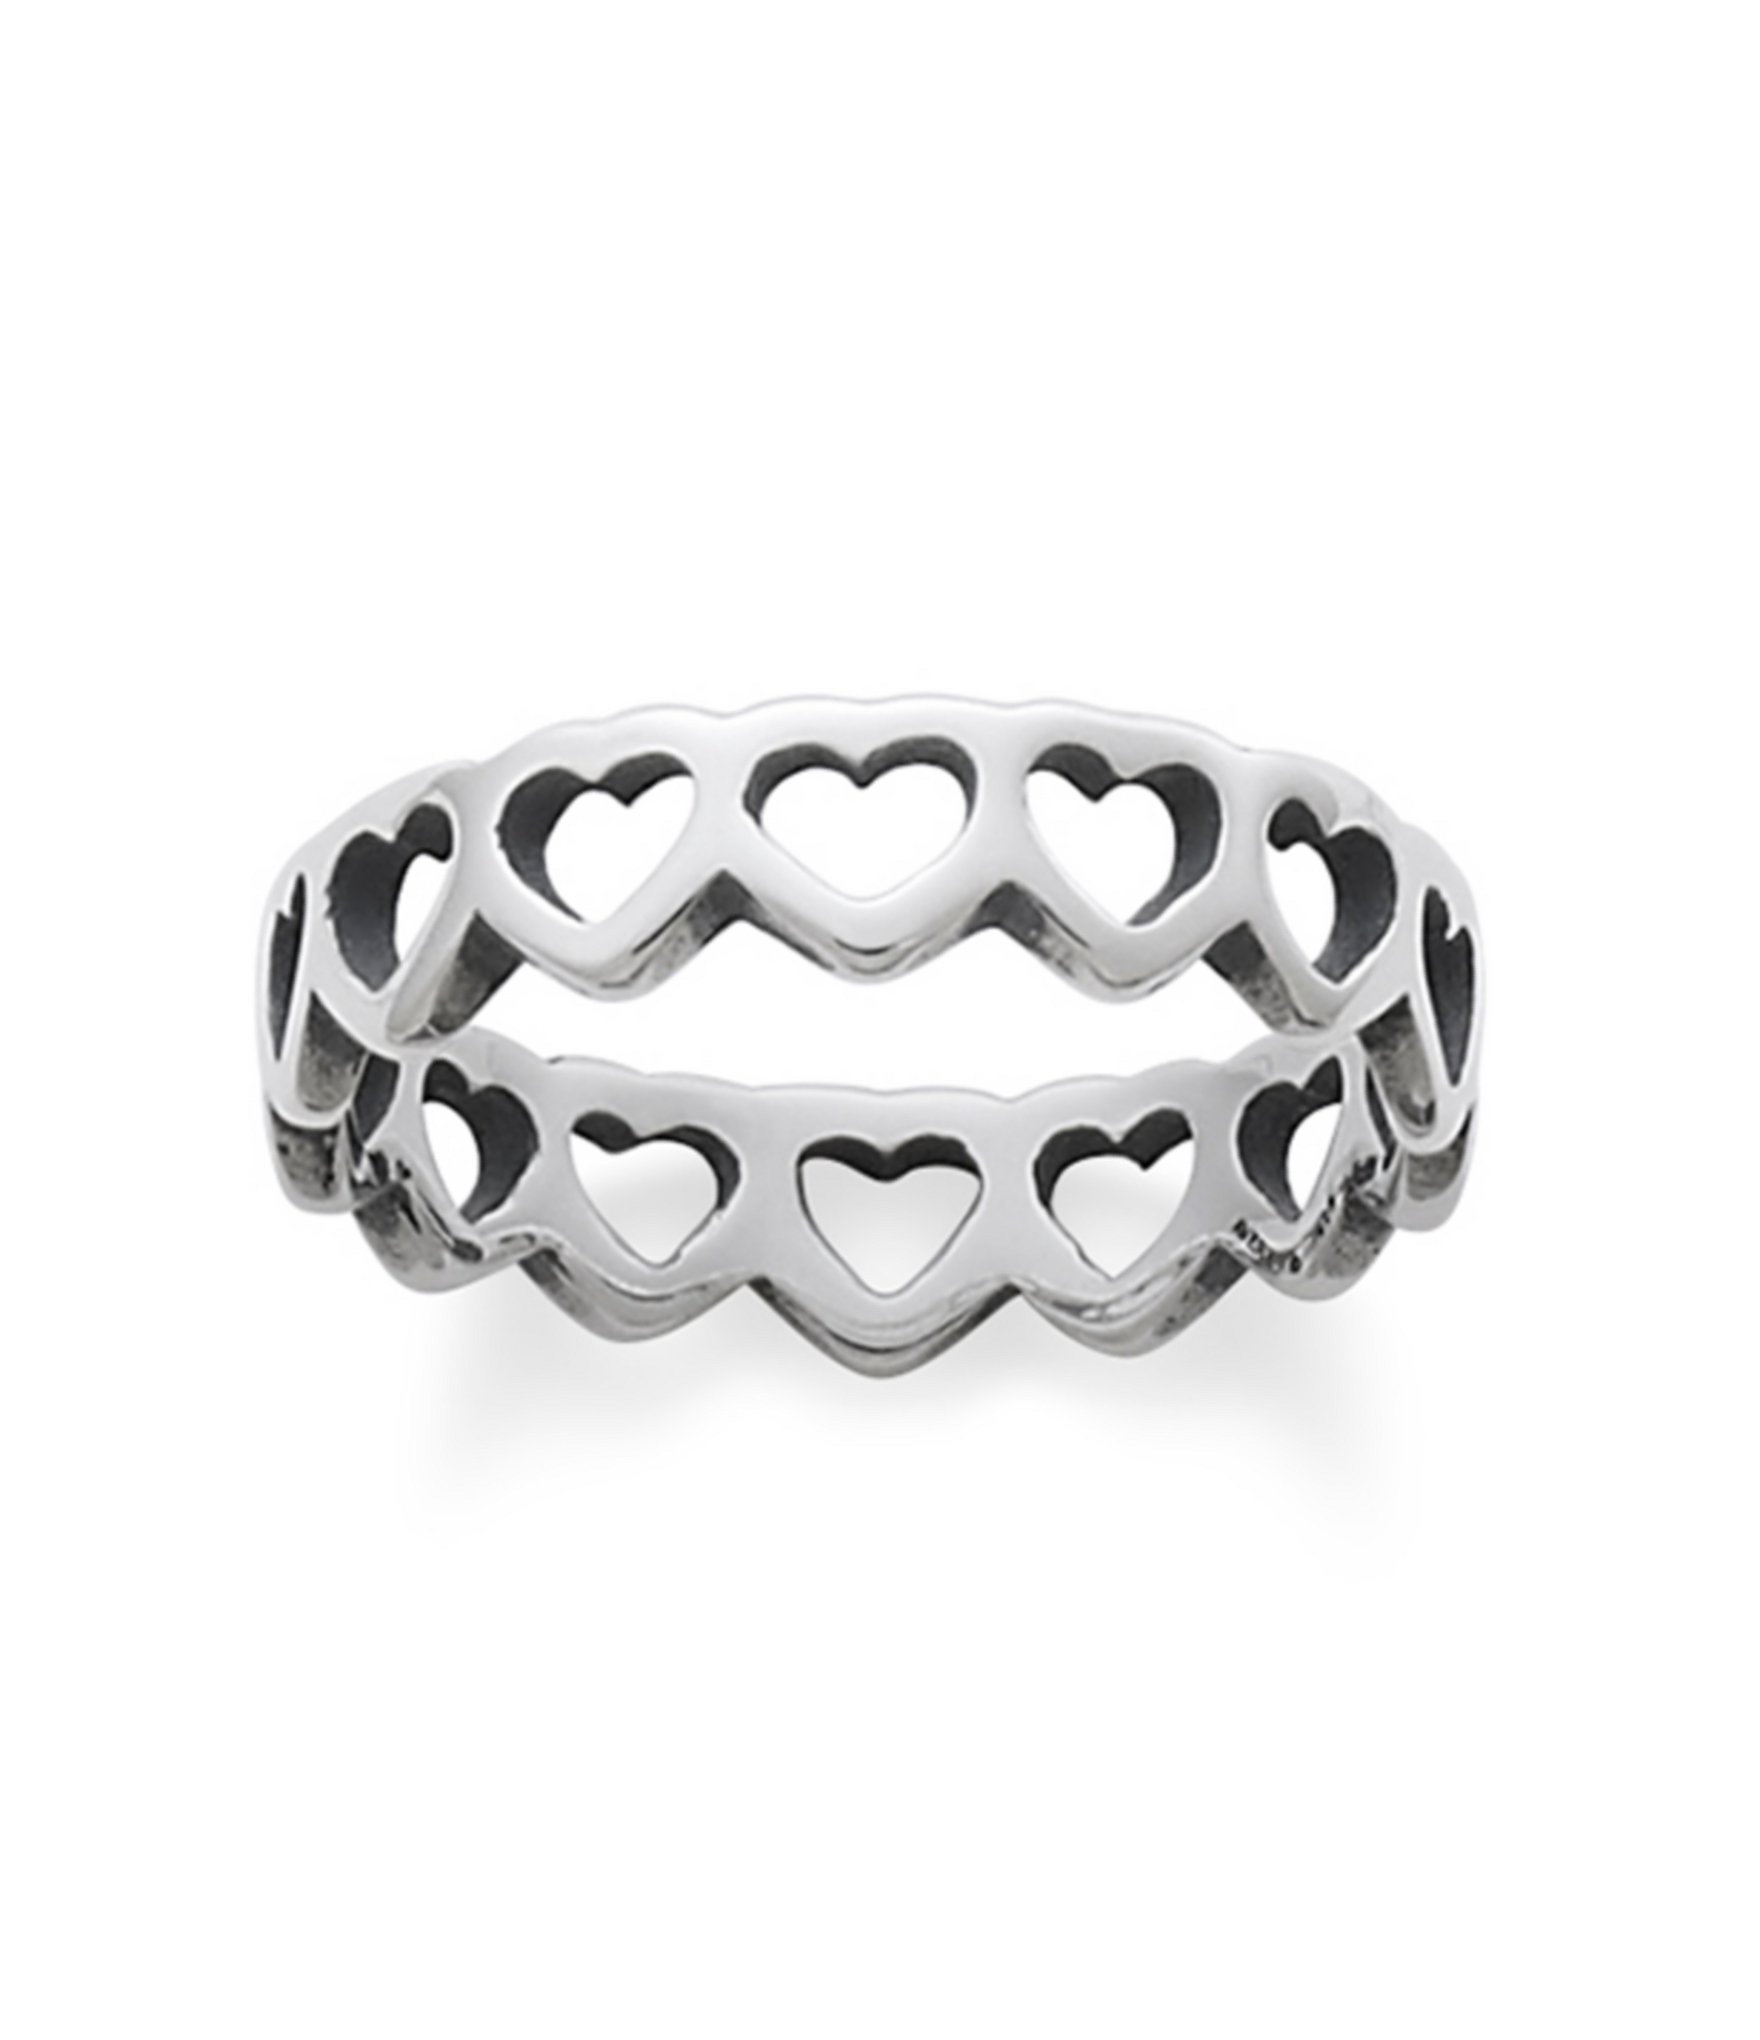 James Avery Tiny Hearts Band Ring | Dillard's Within 2018 Band Of Hearts Rings (Gallery 6 of 25)